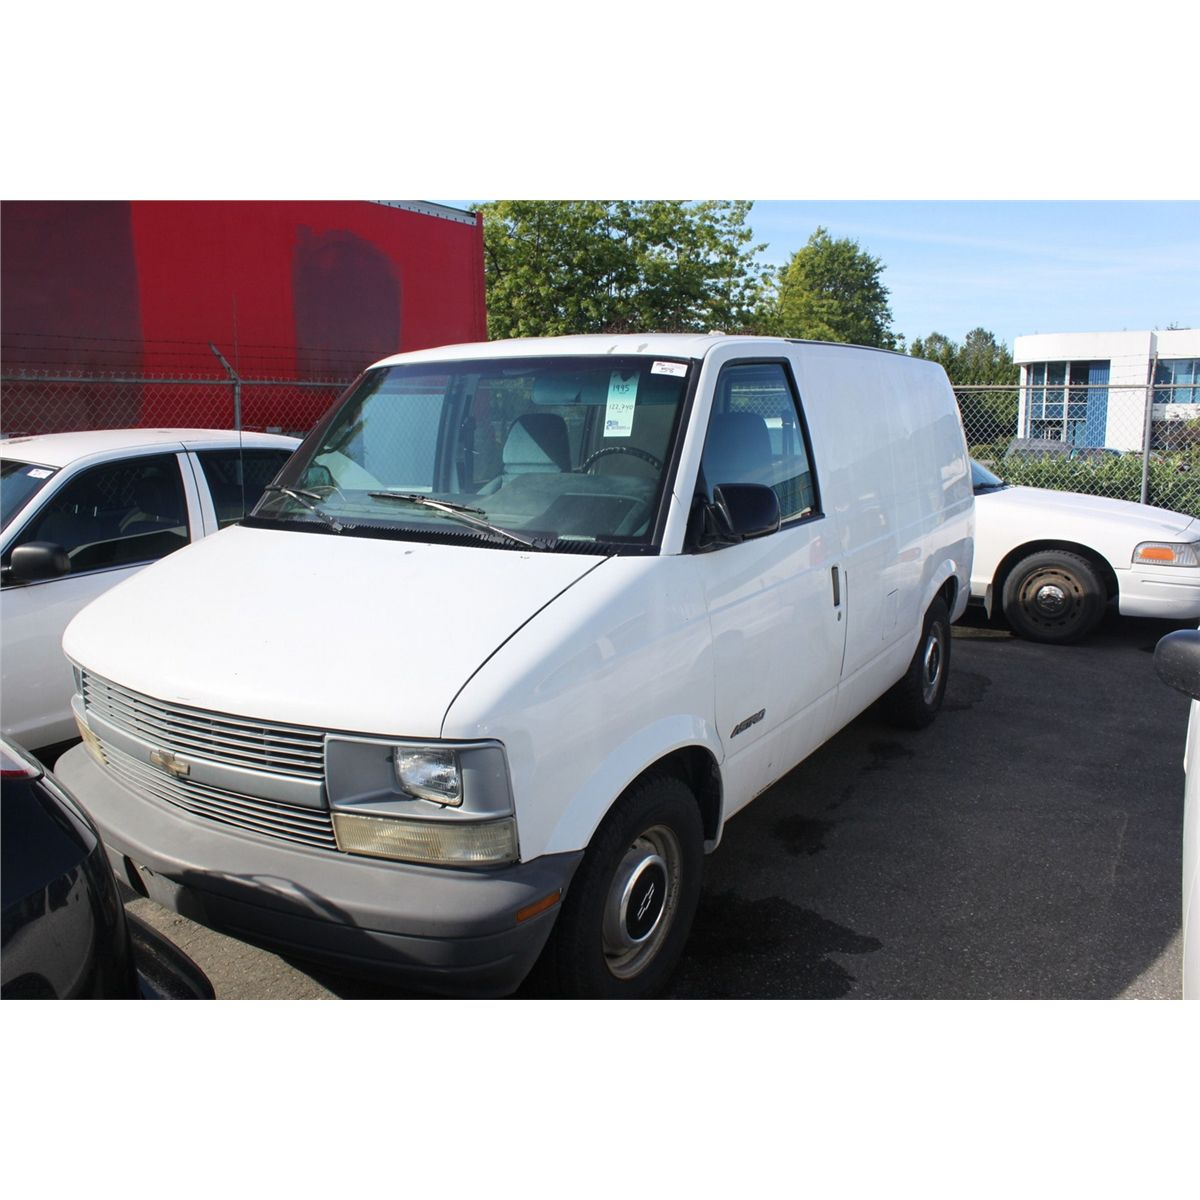 small resolution of image 1 1995 white chevy astro cargo van